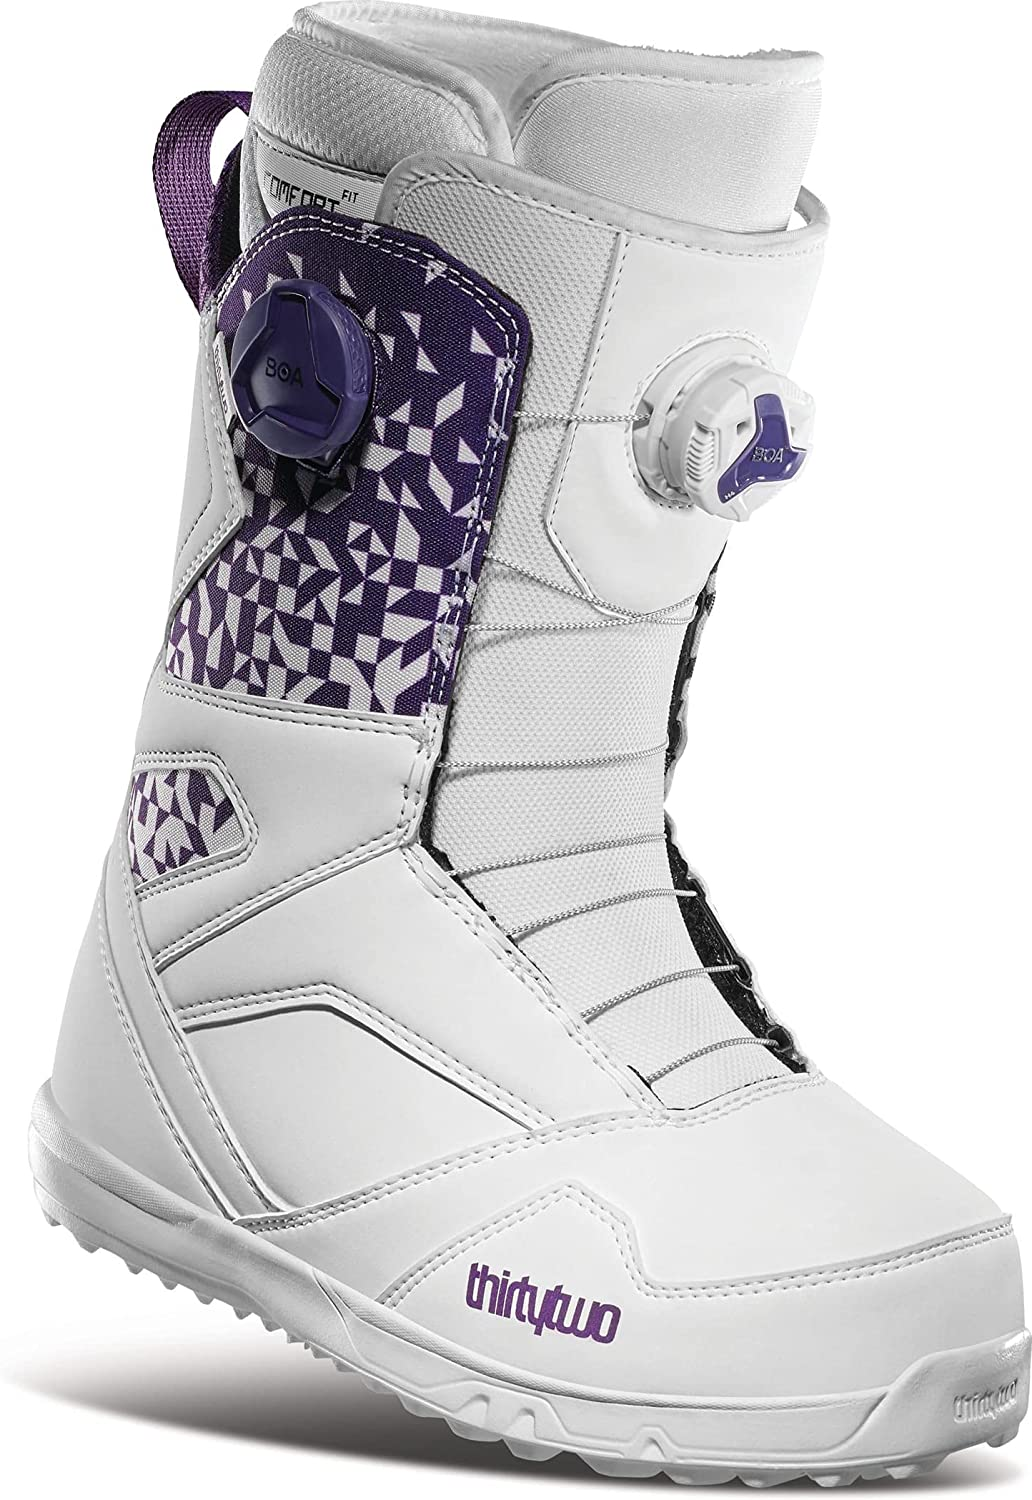 Thirty Two STW NEW before selling Double BOA Boots Womens Max 88% OFF Snowboard